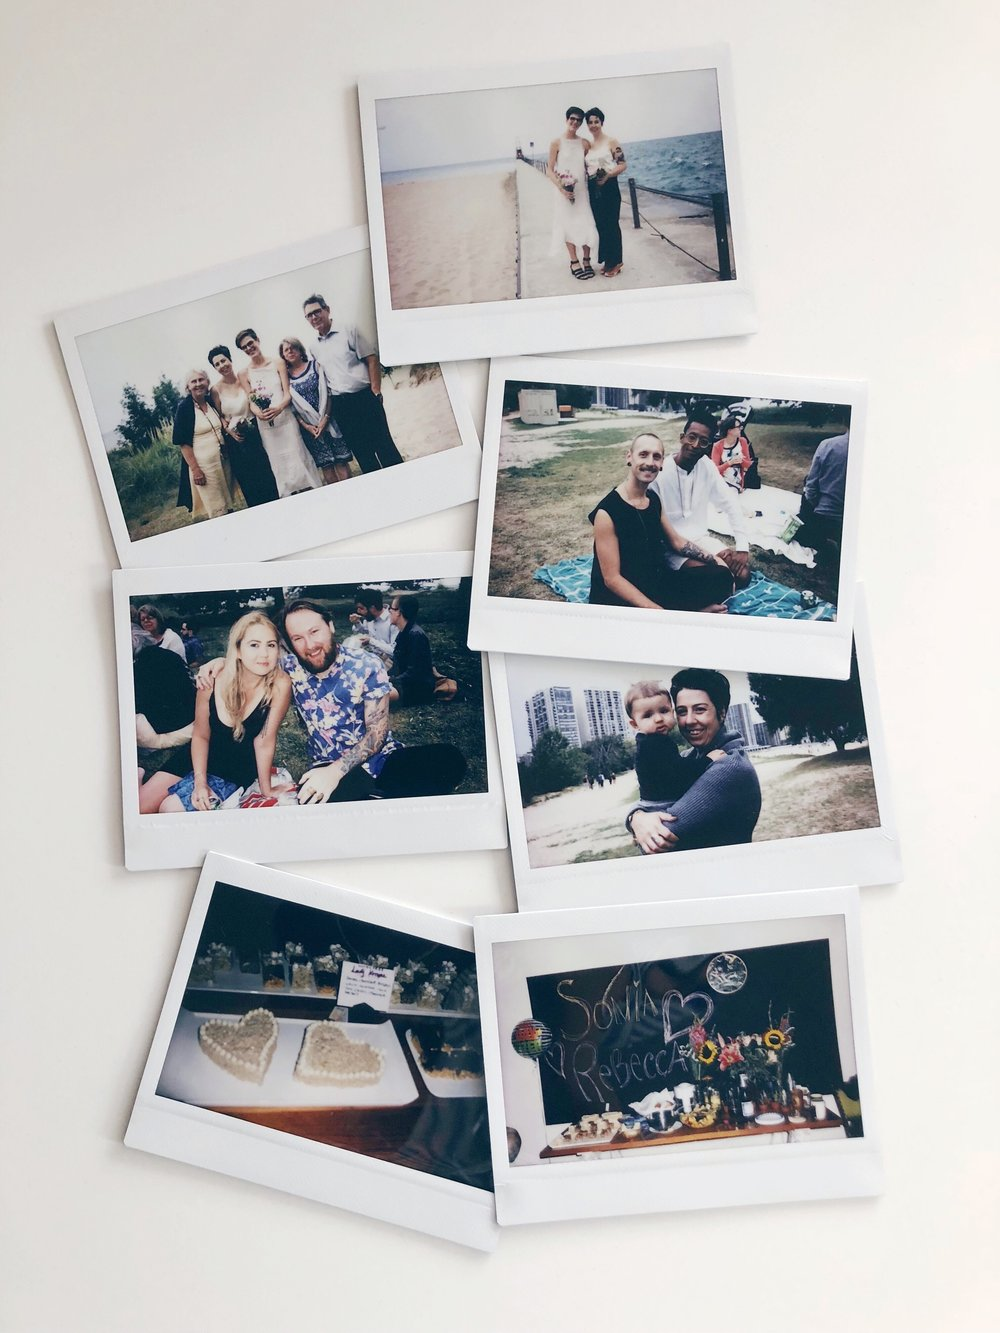 Best of the instax wedding photos